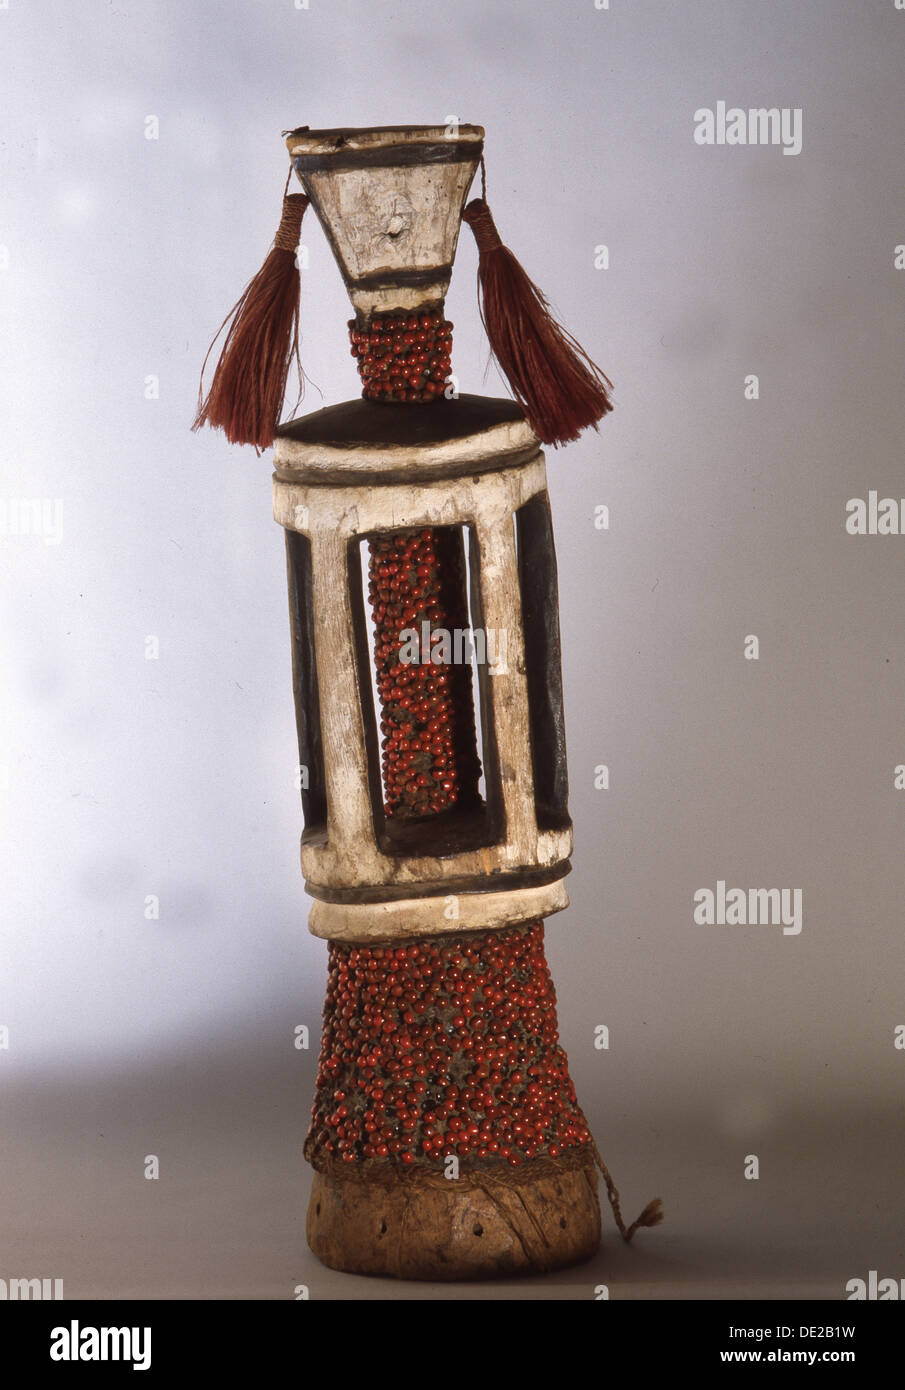 Stylised human figure covered with red abrus seeds. - Stock Image